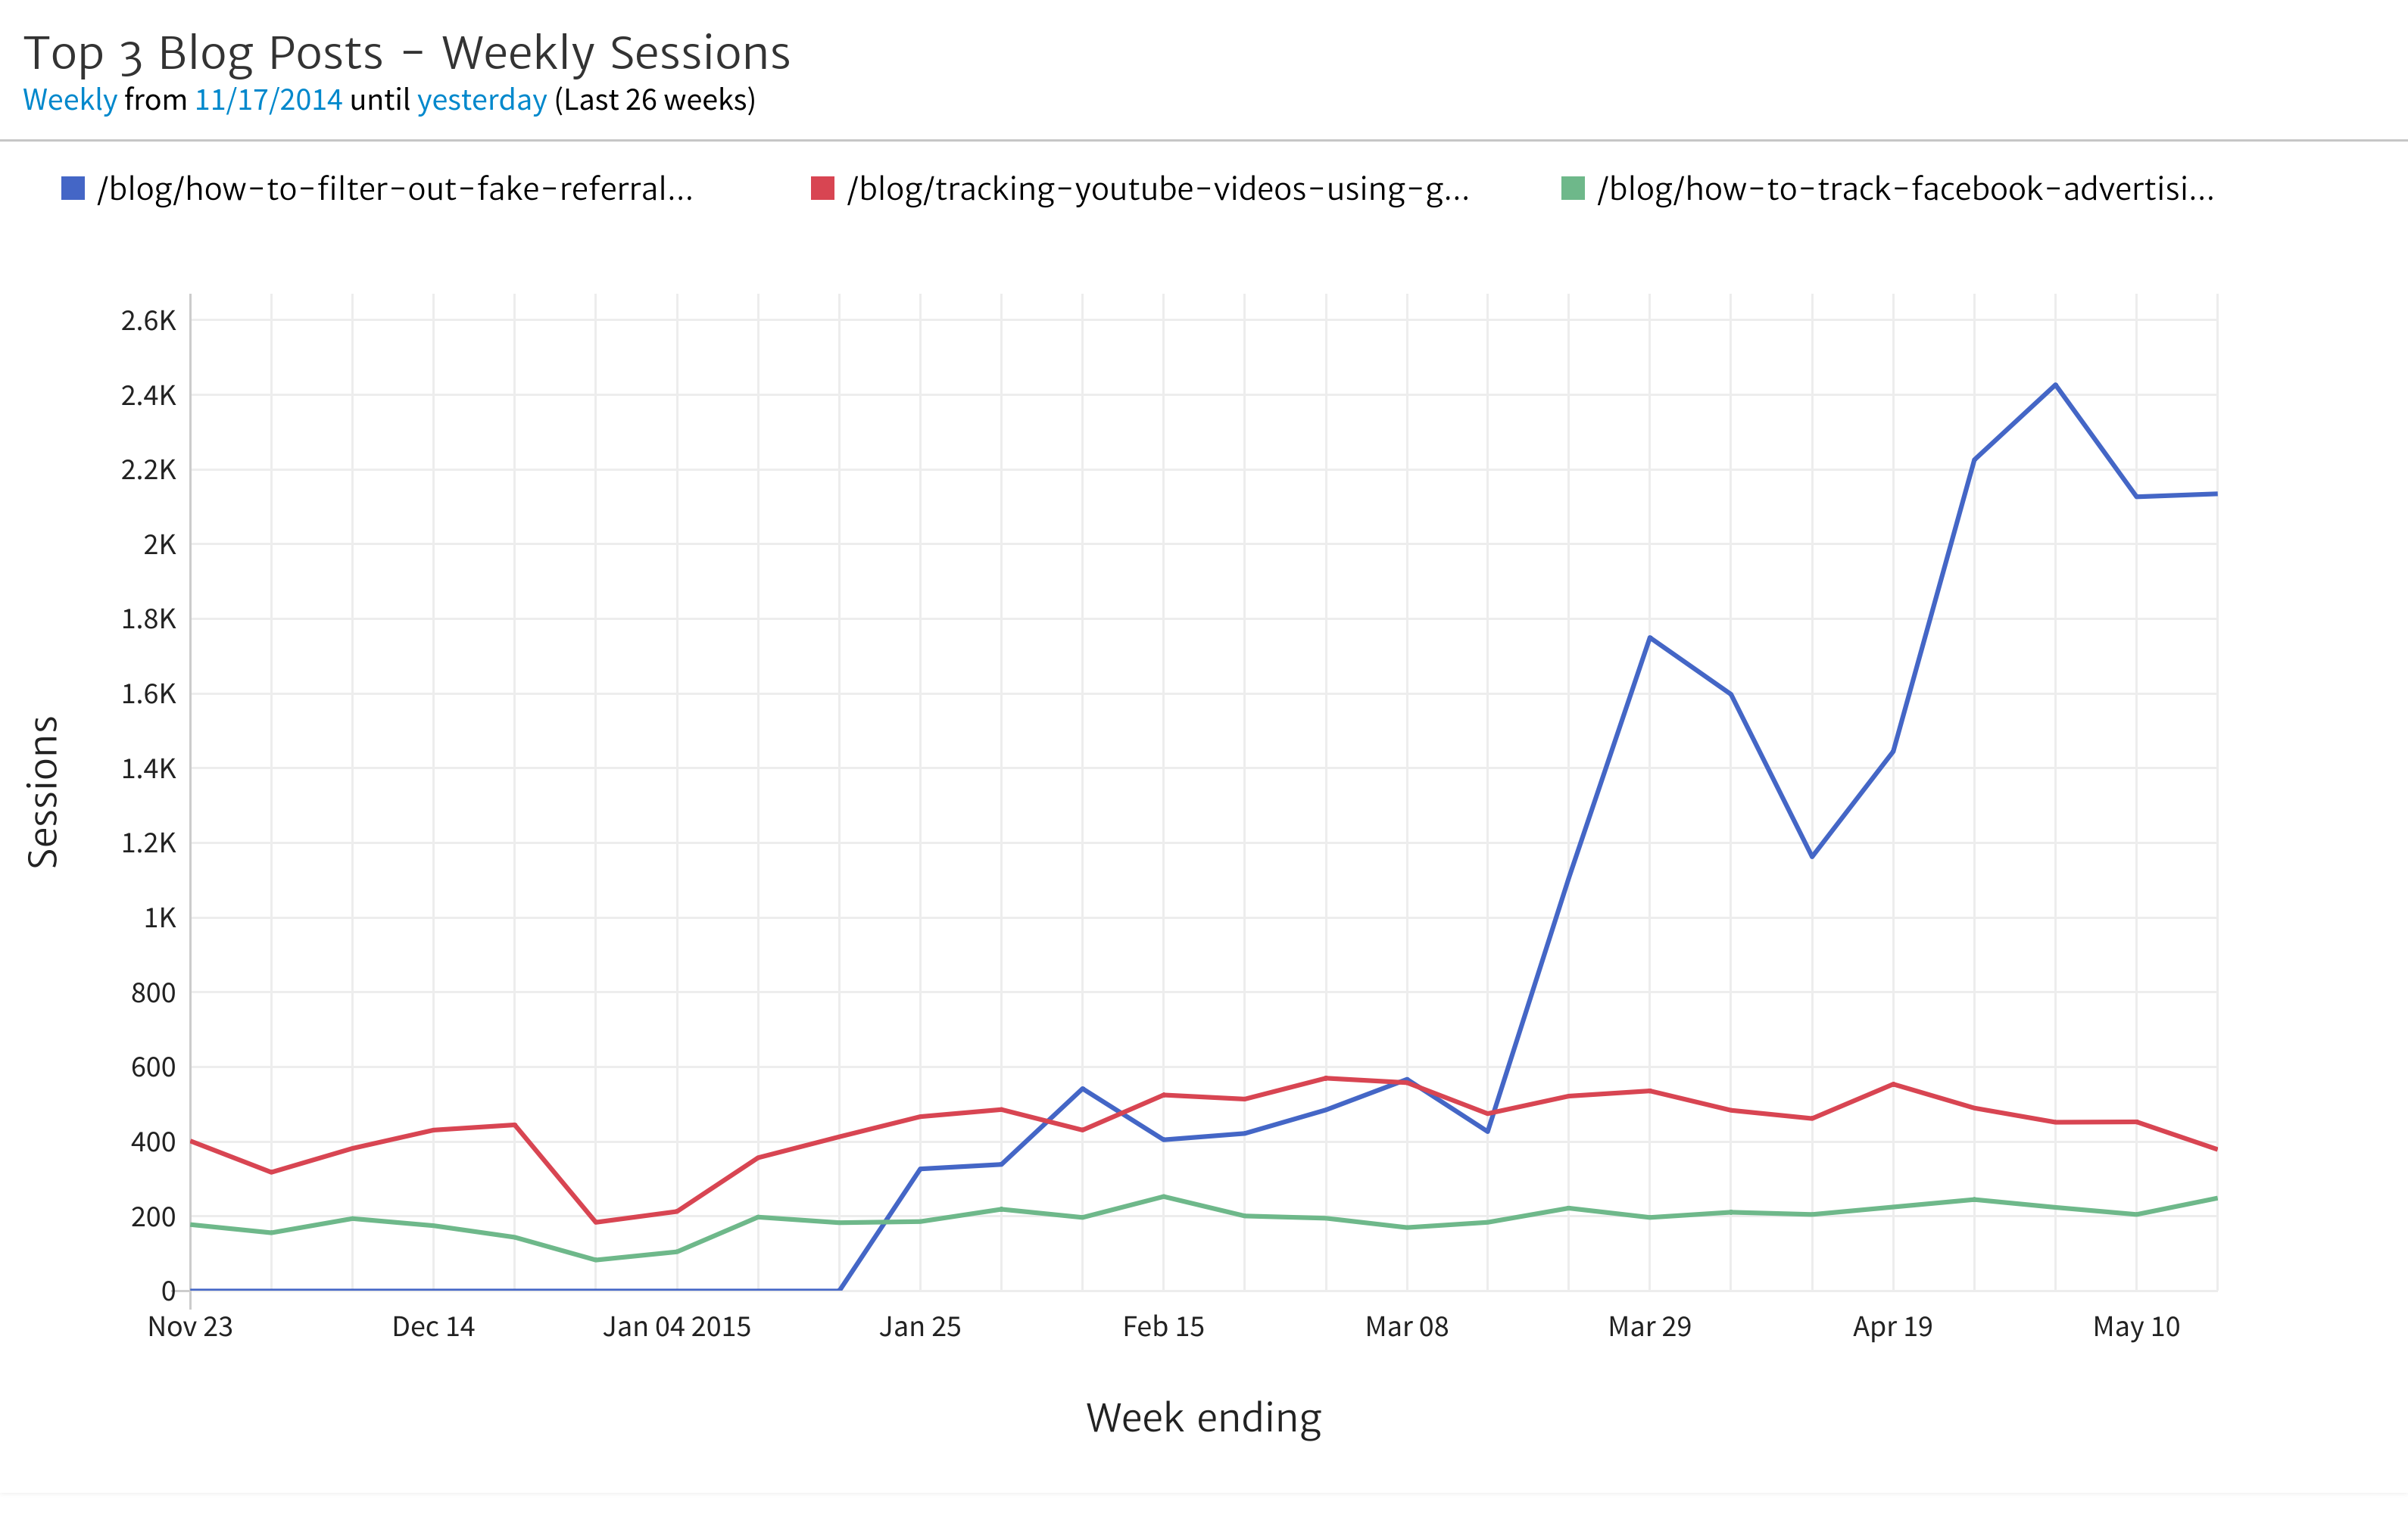 Megalytic Chart showing Top 3 Blog Posts